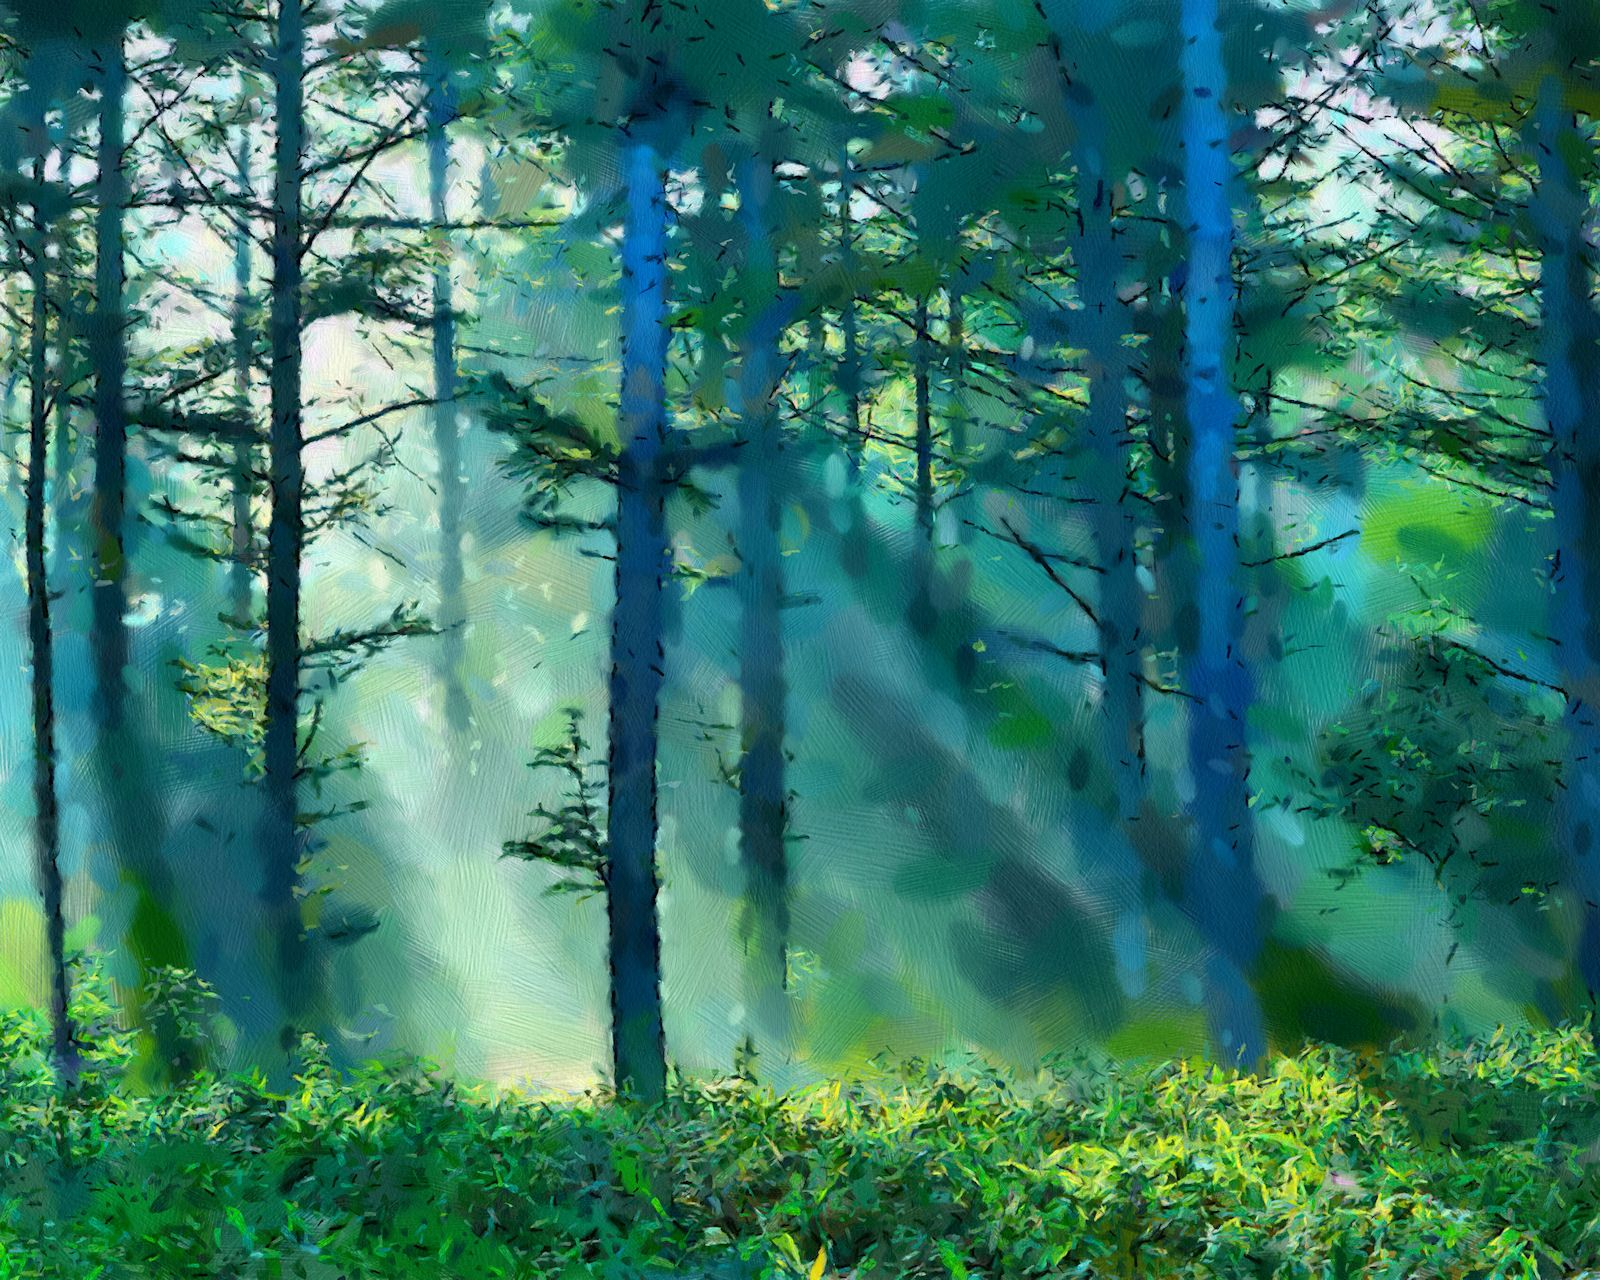 Forest Piantings Painting Misty Landscapes And Beams Of Light In The Forest It Has Two Chinese Landscape Painting Landscape Paintings Forest Painting